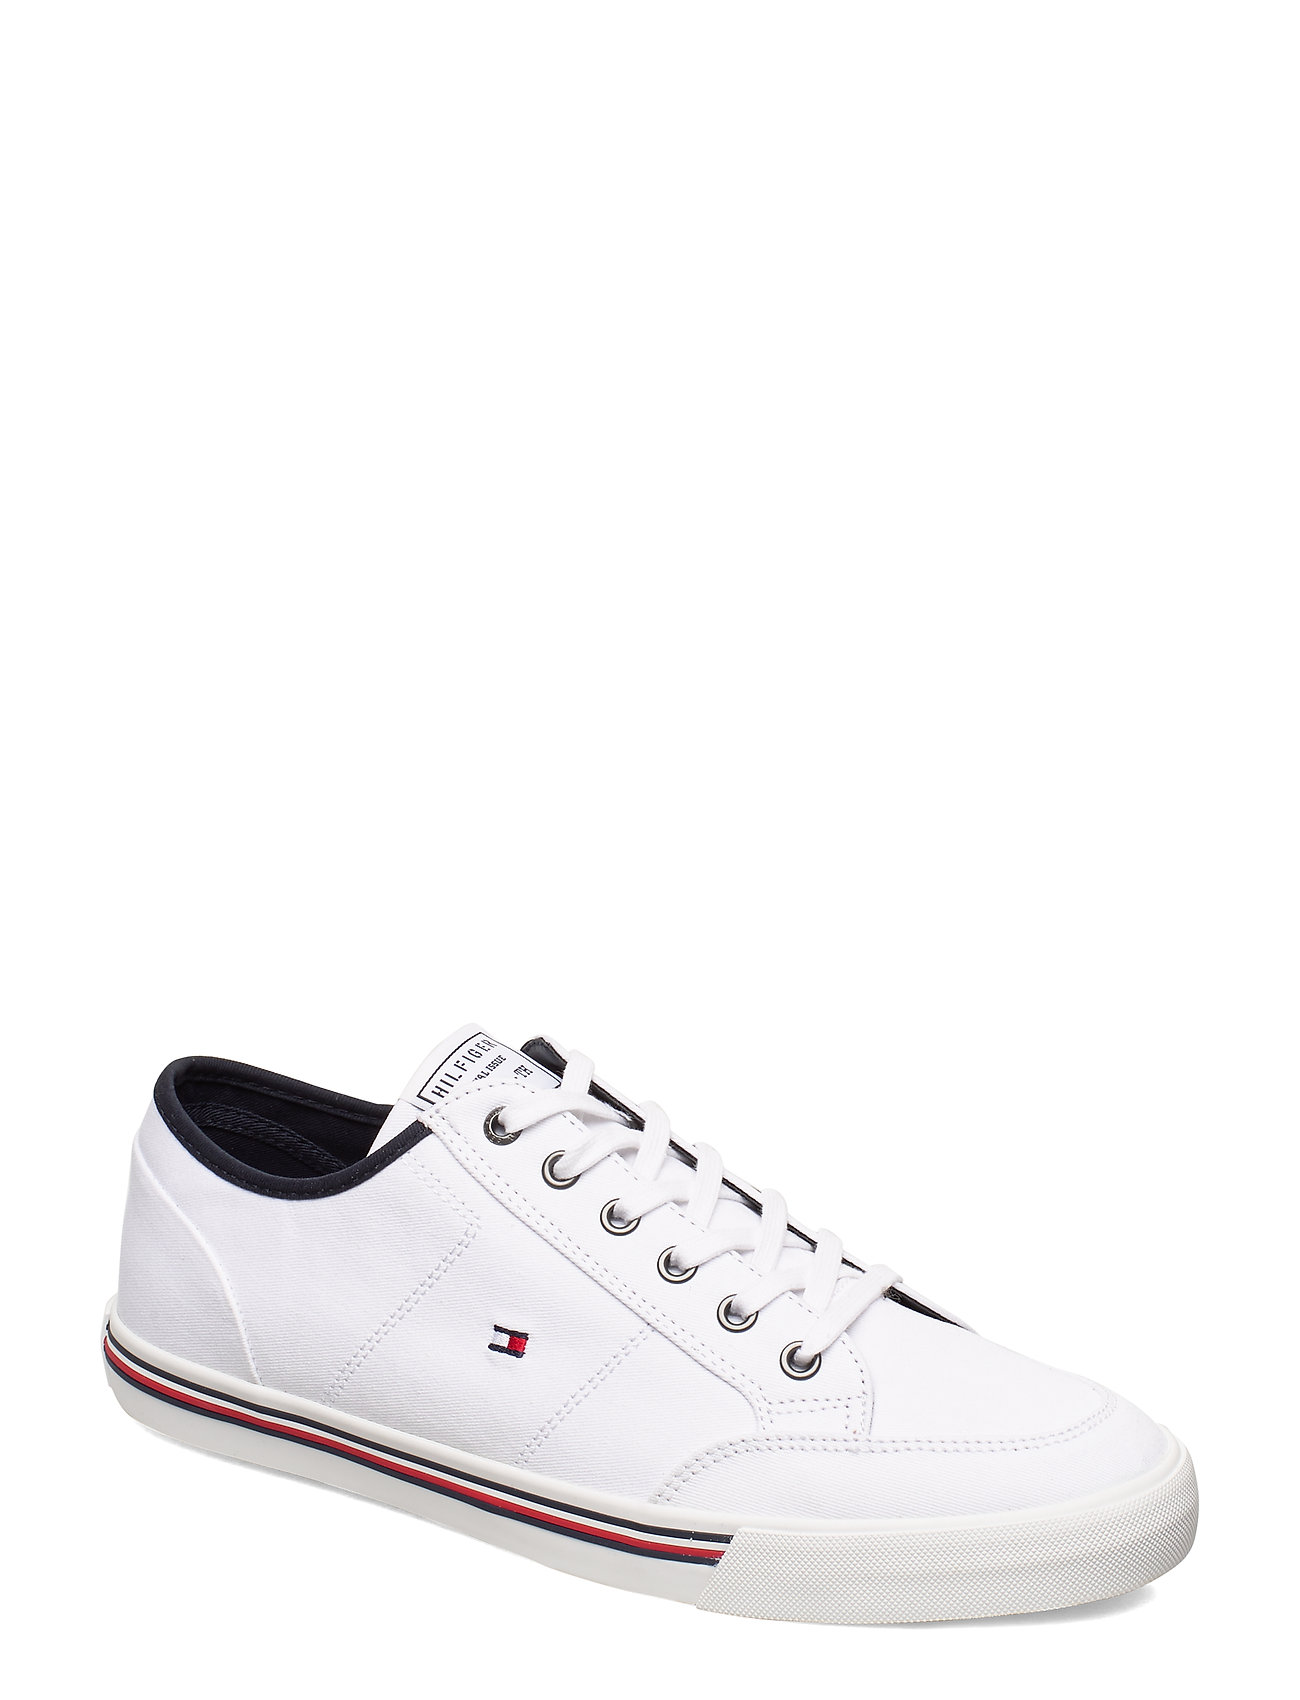 Core Corporate Textile Sneaker Matalavartiset Sneakerit Tennarit Valkoinen Tommy Hilfiger